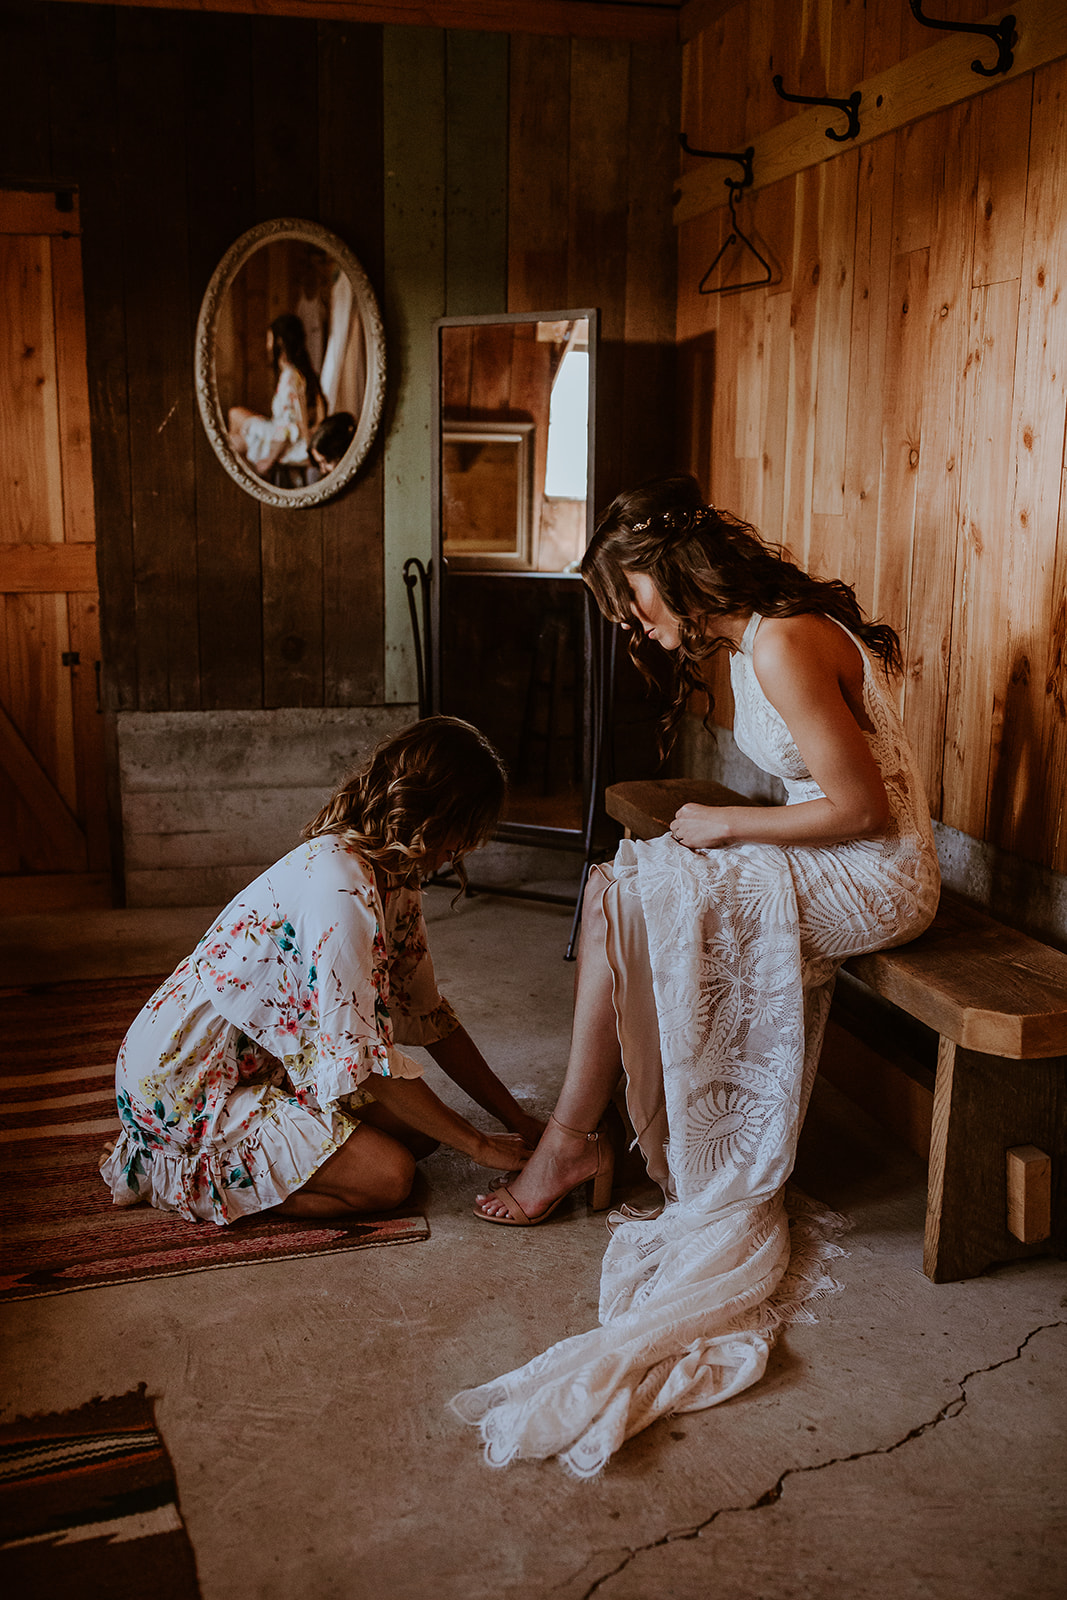 mount-vernon-wedding-salt-box-barn-amanda-riley-megan-gallagher-photography-3_(116_of_250).jpg